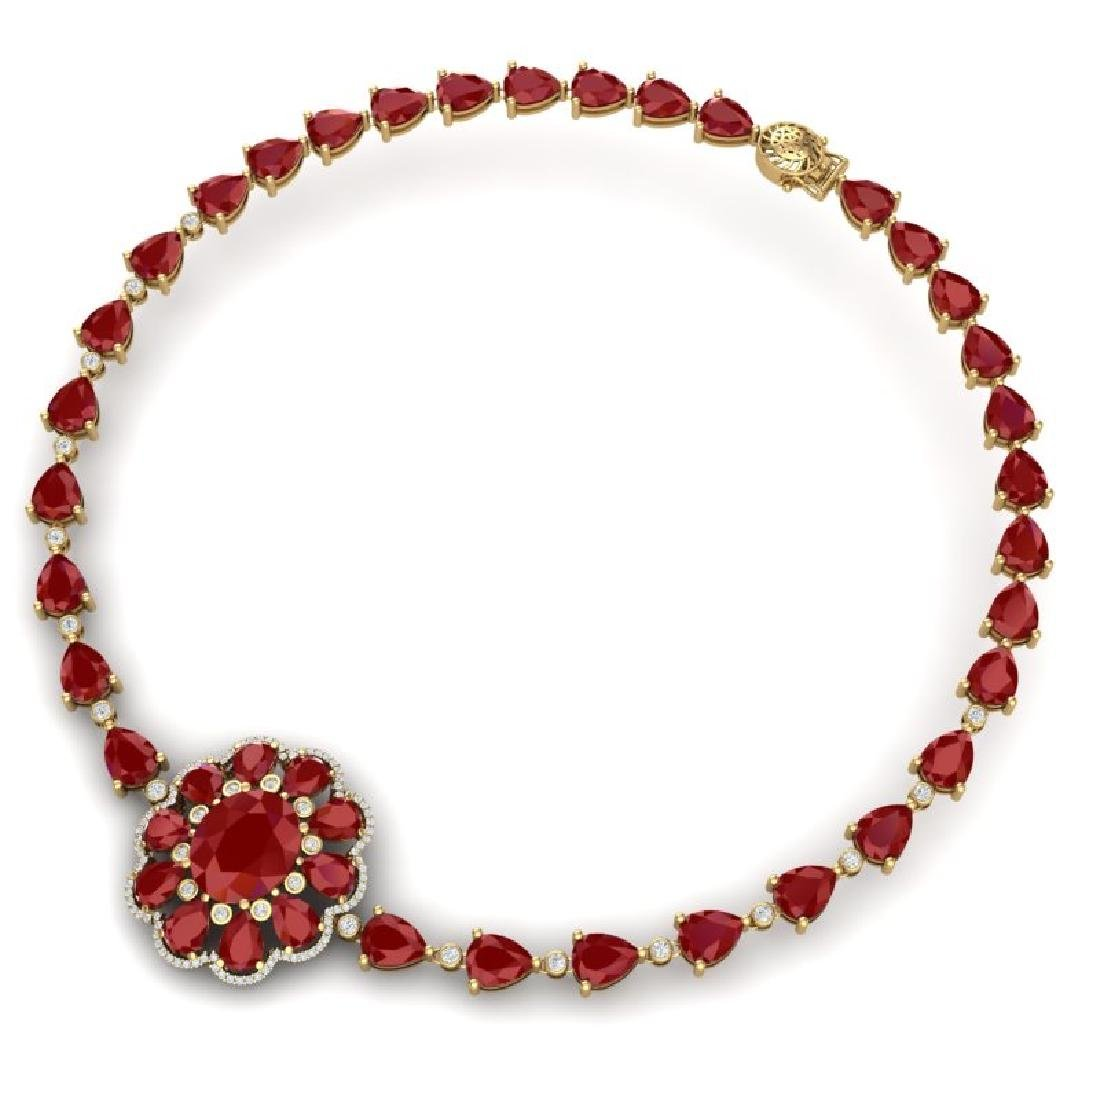 78.98 CTW Royalty Ruby & VS Diamond Necklace 18K Yellow - 3